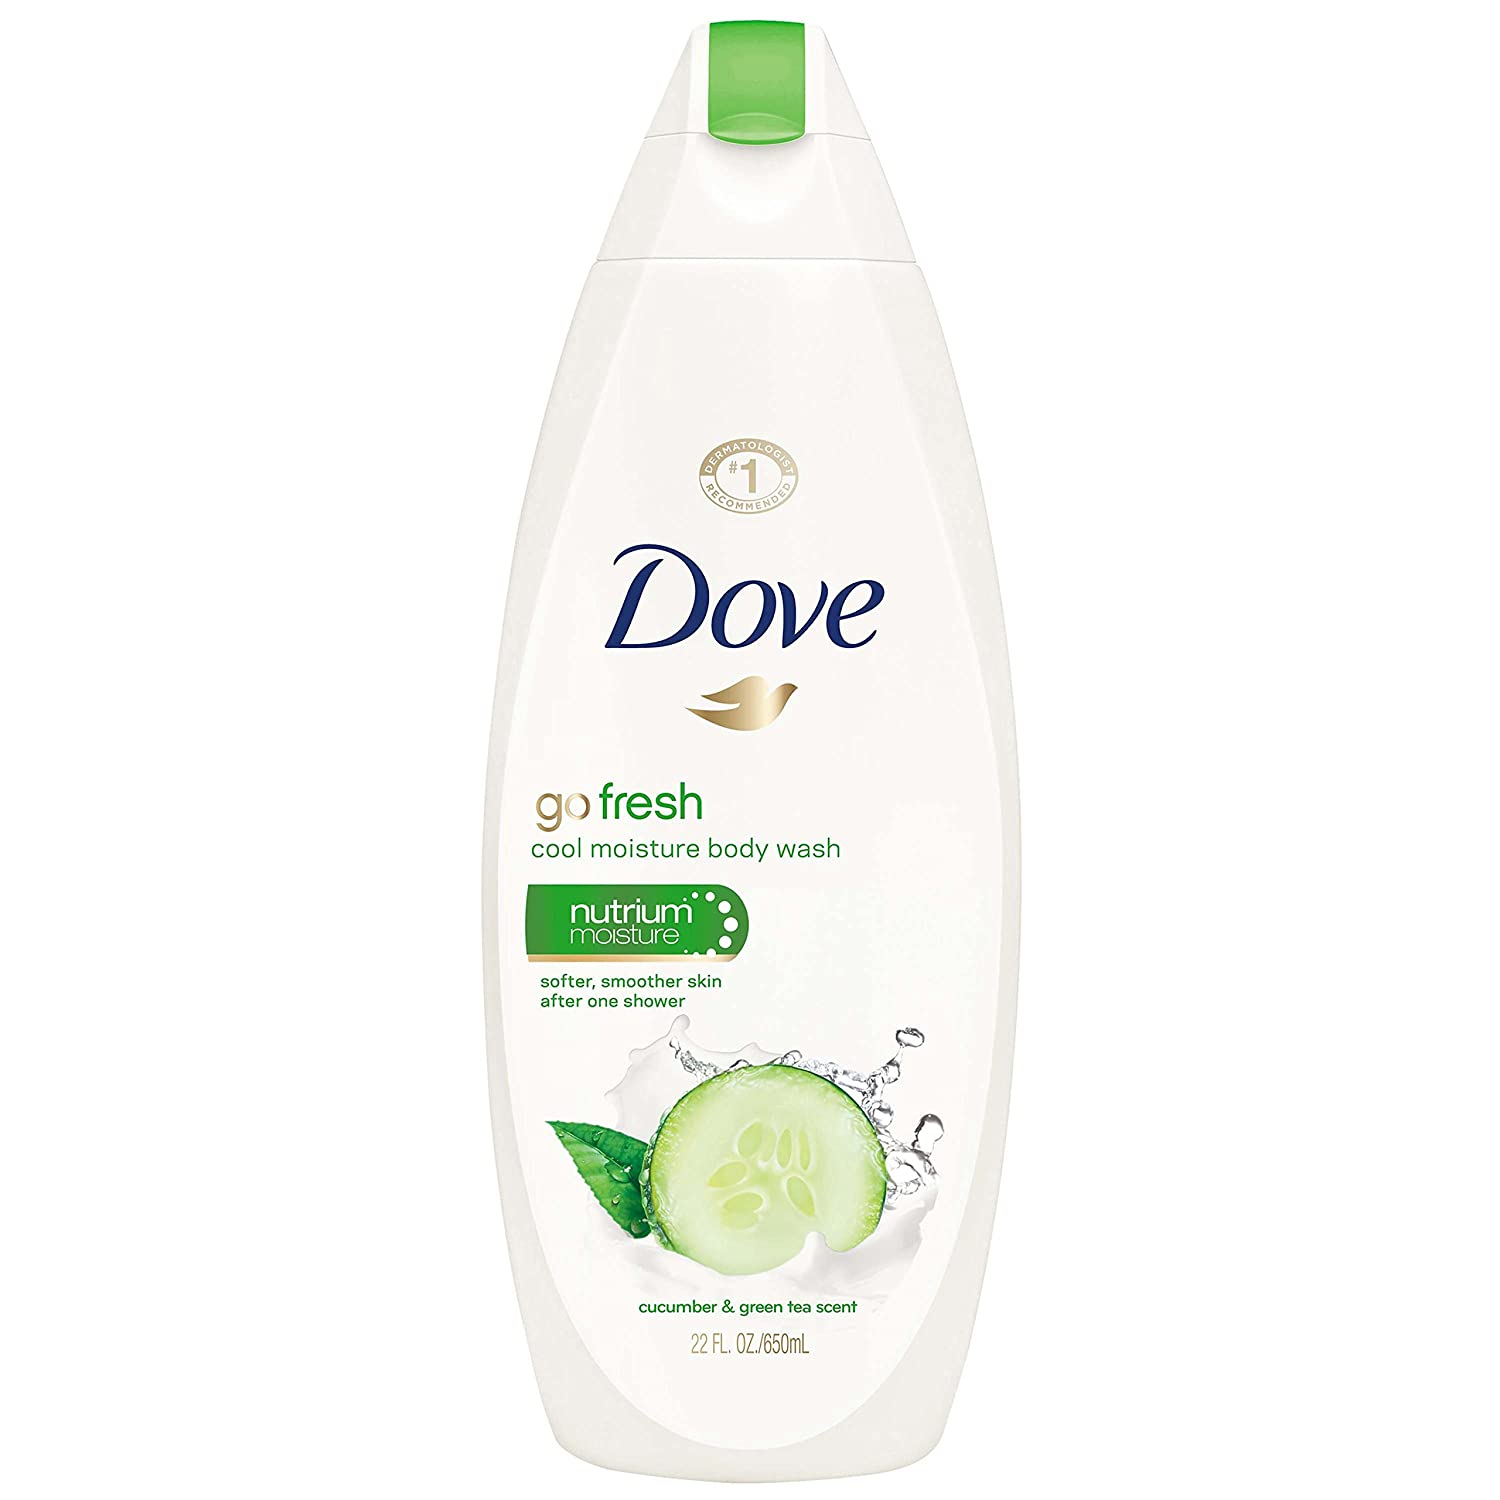 Dove go fresh Body Wash, Cucumber and Green Tea, 22 Fl Oz (1 Count)